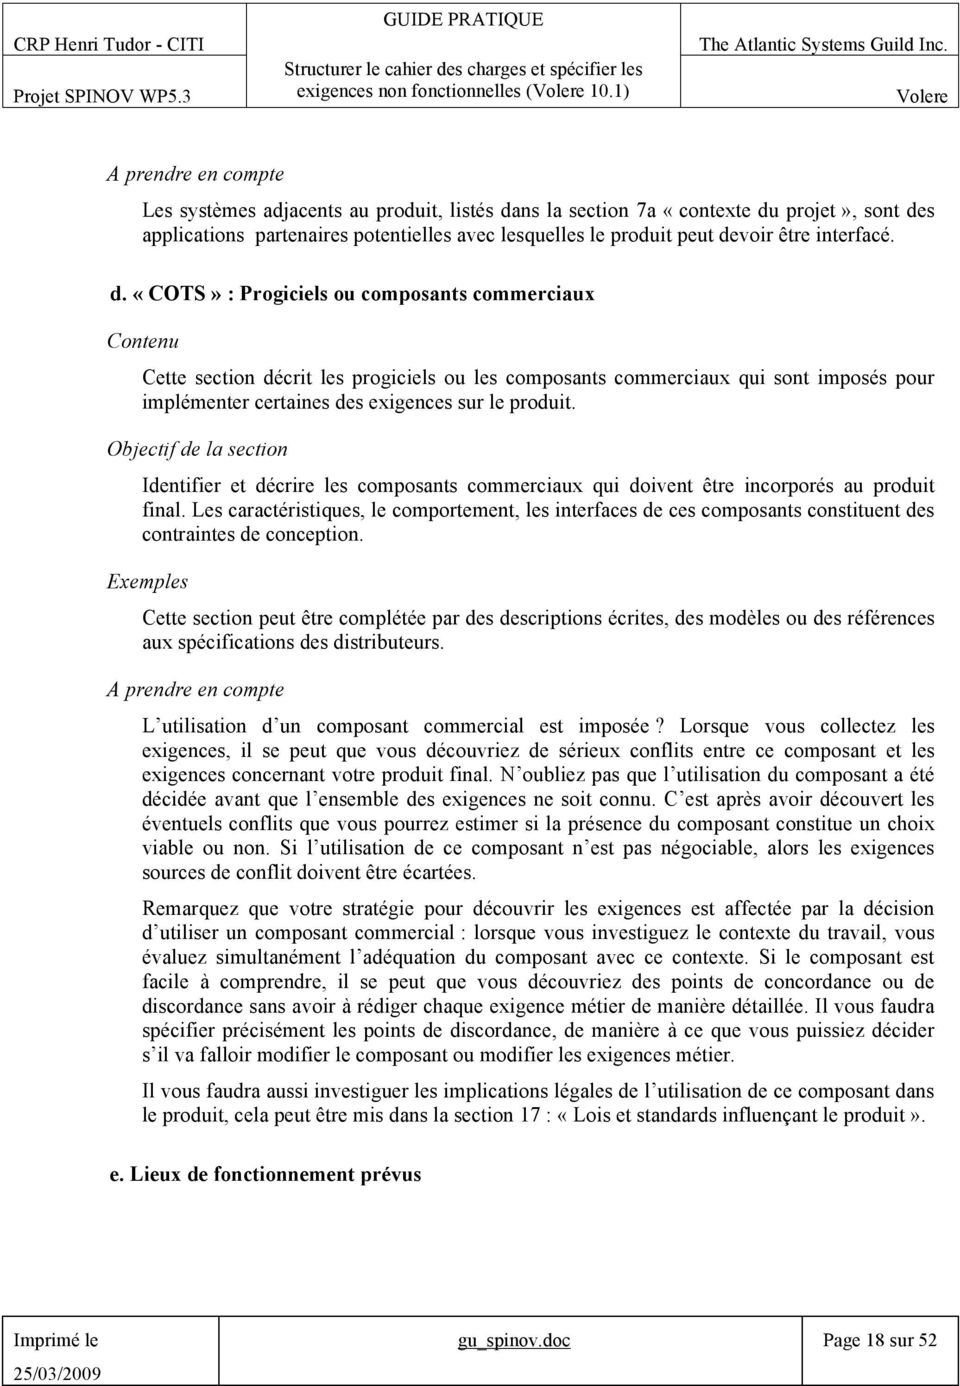 ns la section 7a «contexte du